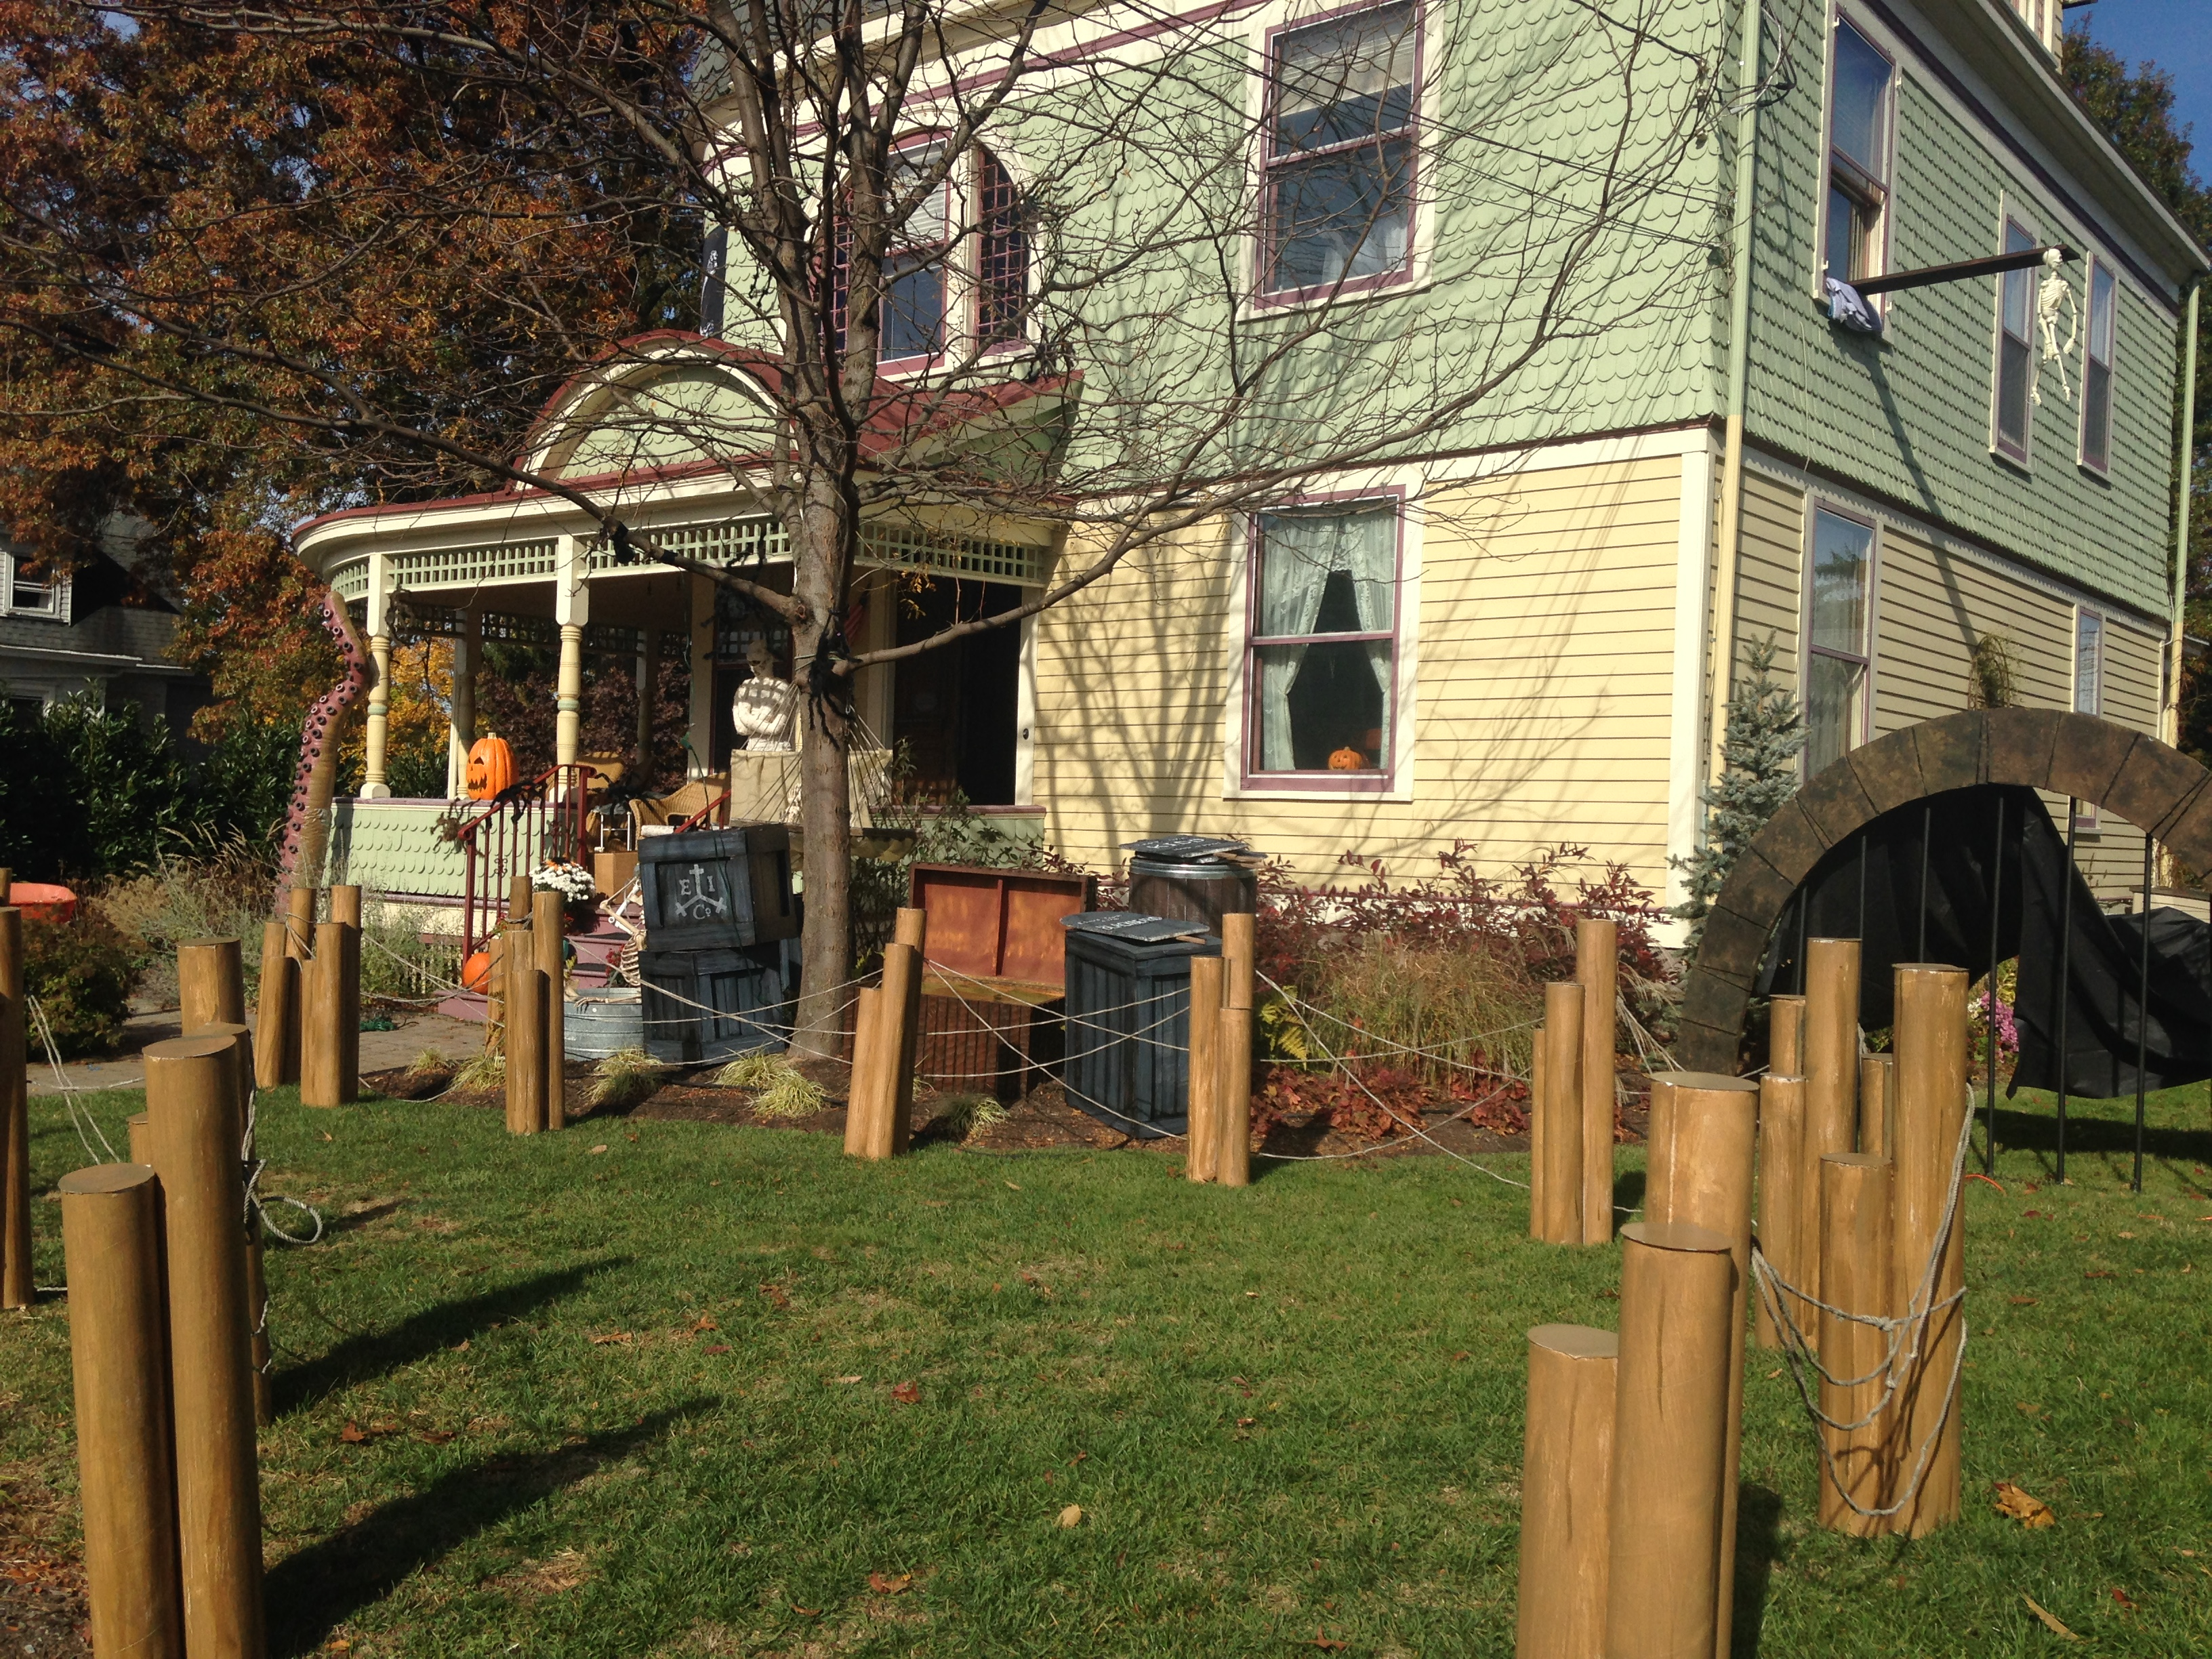 Picture of CardBoard Dock Pilings for Halloween Fence